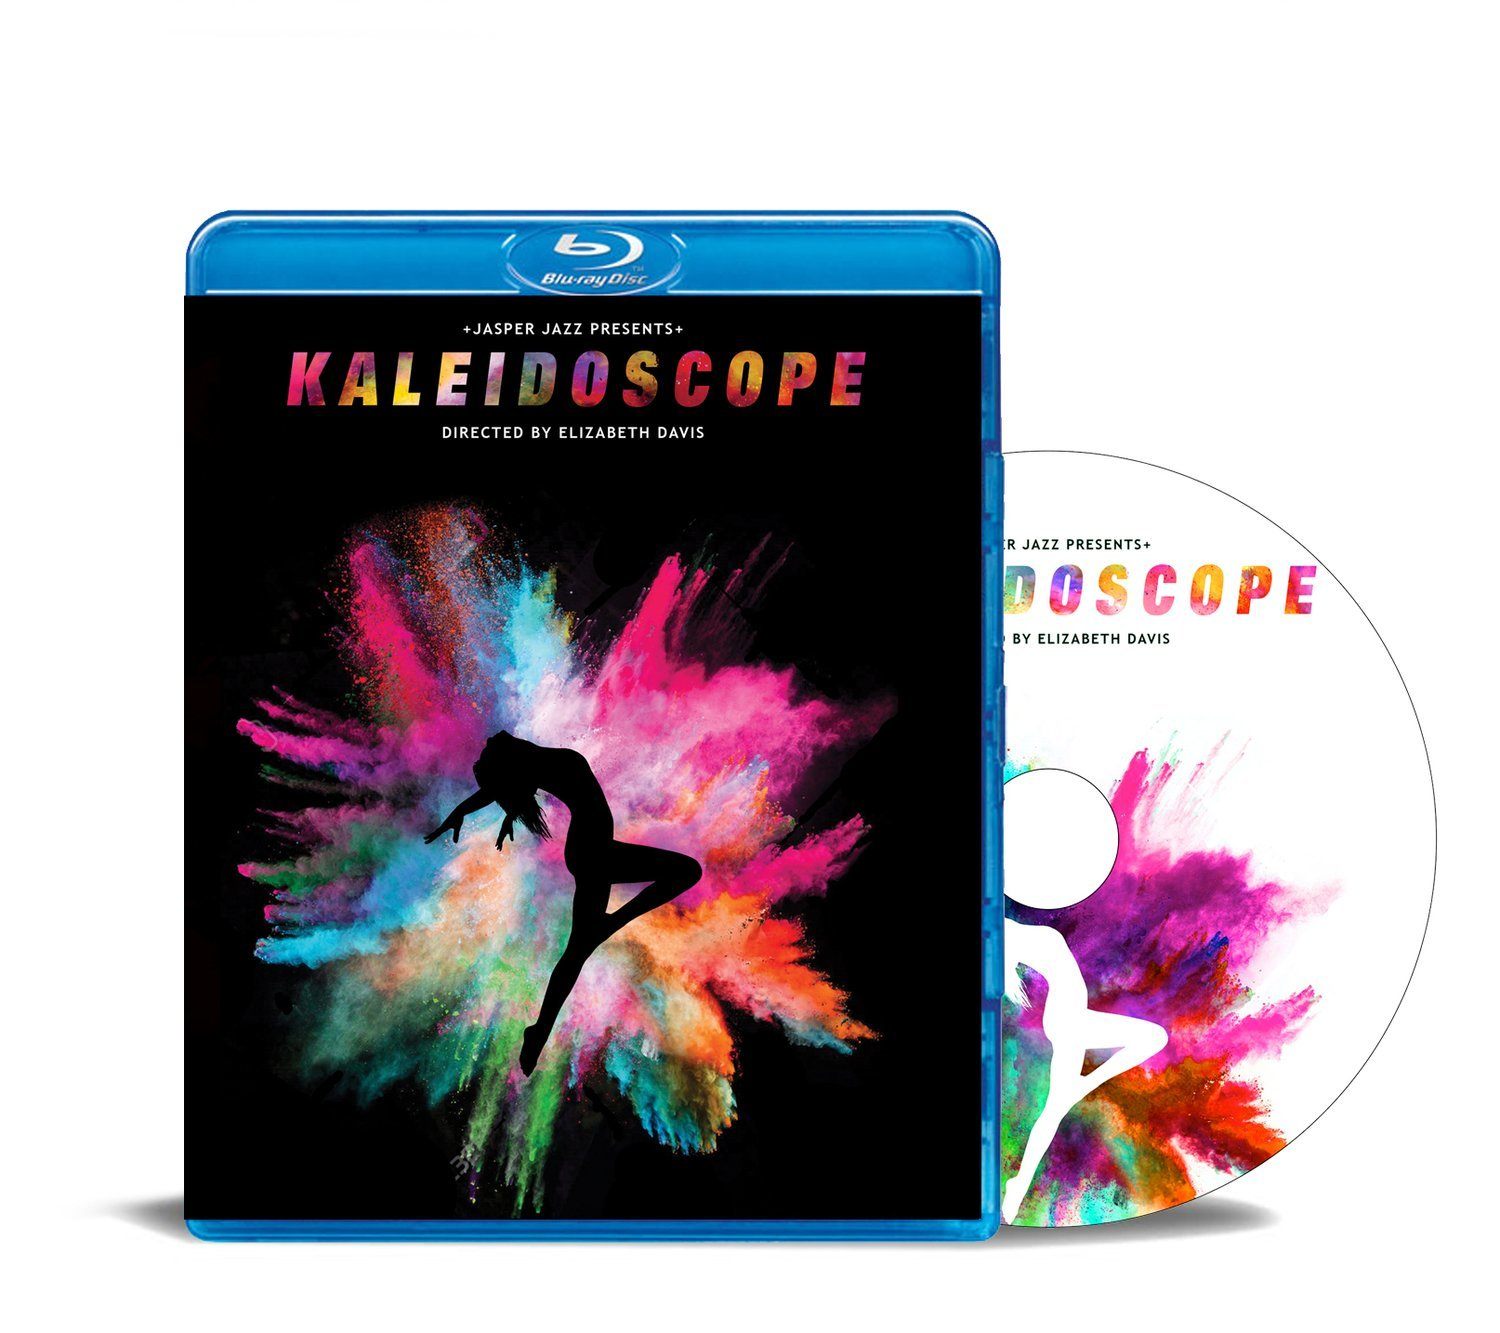 KALEIDOSCOPE Blu-ray 2017